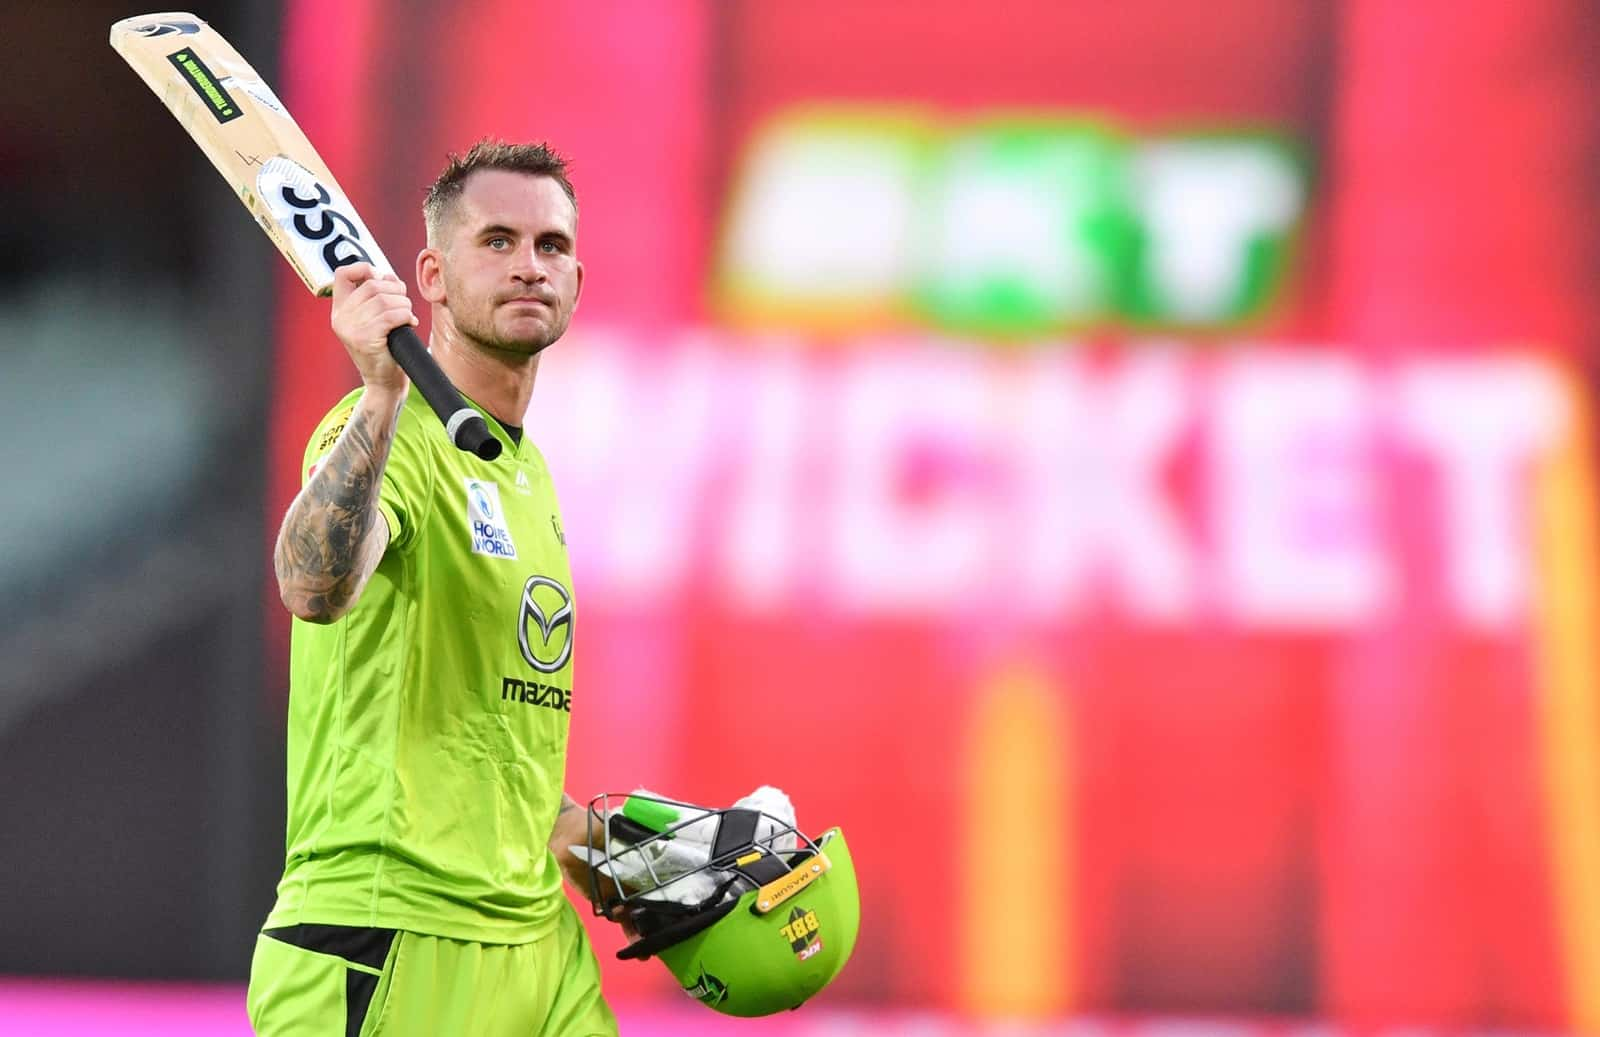 Watch: Alex Hales Scores 51-Ball 100 To Help Sydney Thunder Post Highest BBL Total Ever